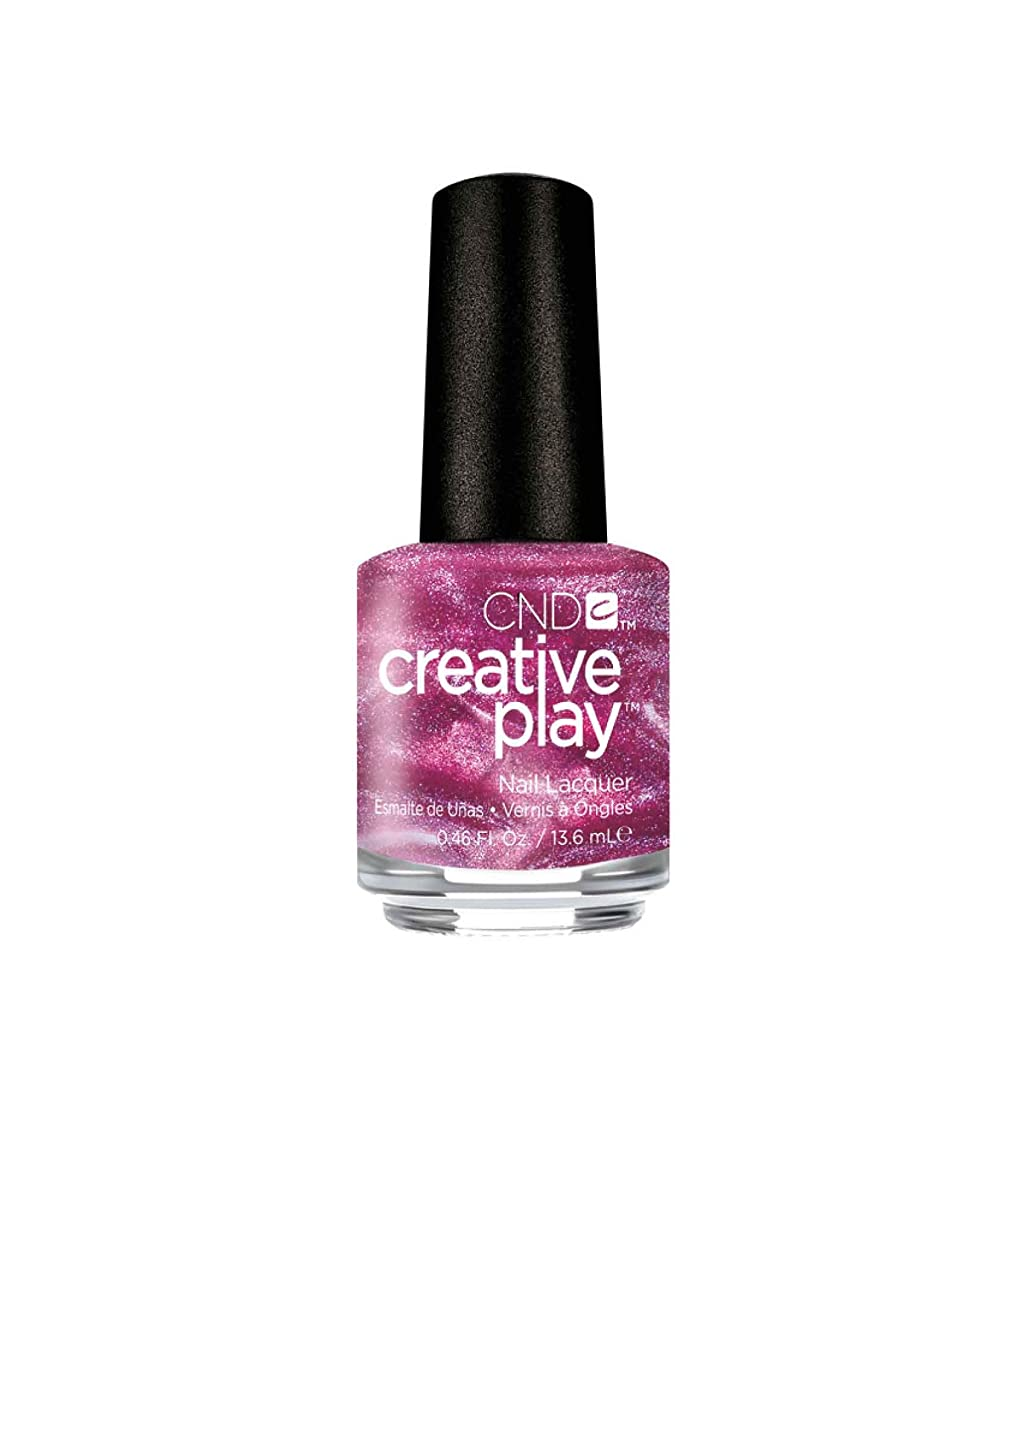 端ジュラシックパーク農学CND Creative Play Lacquer - Pinkidescent - 0.46oz / 13.6ml